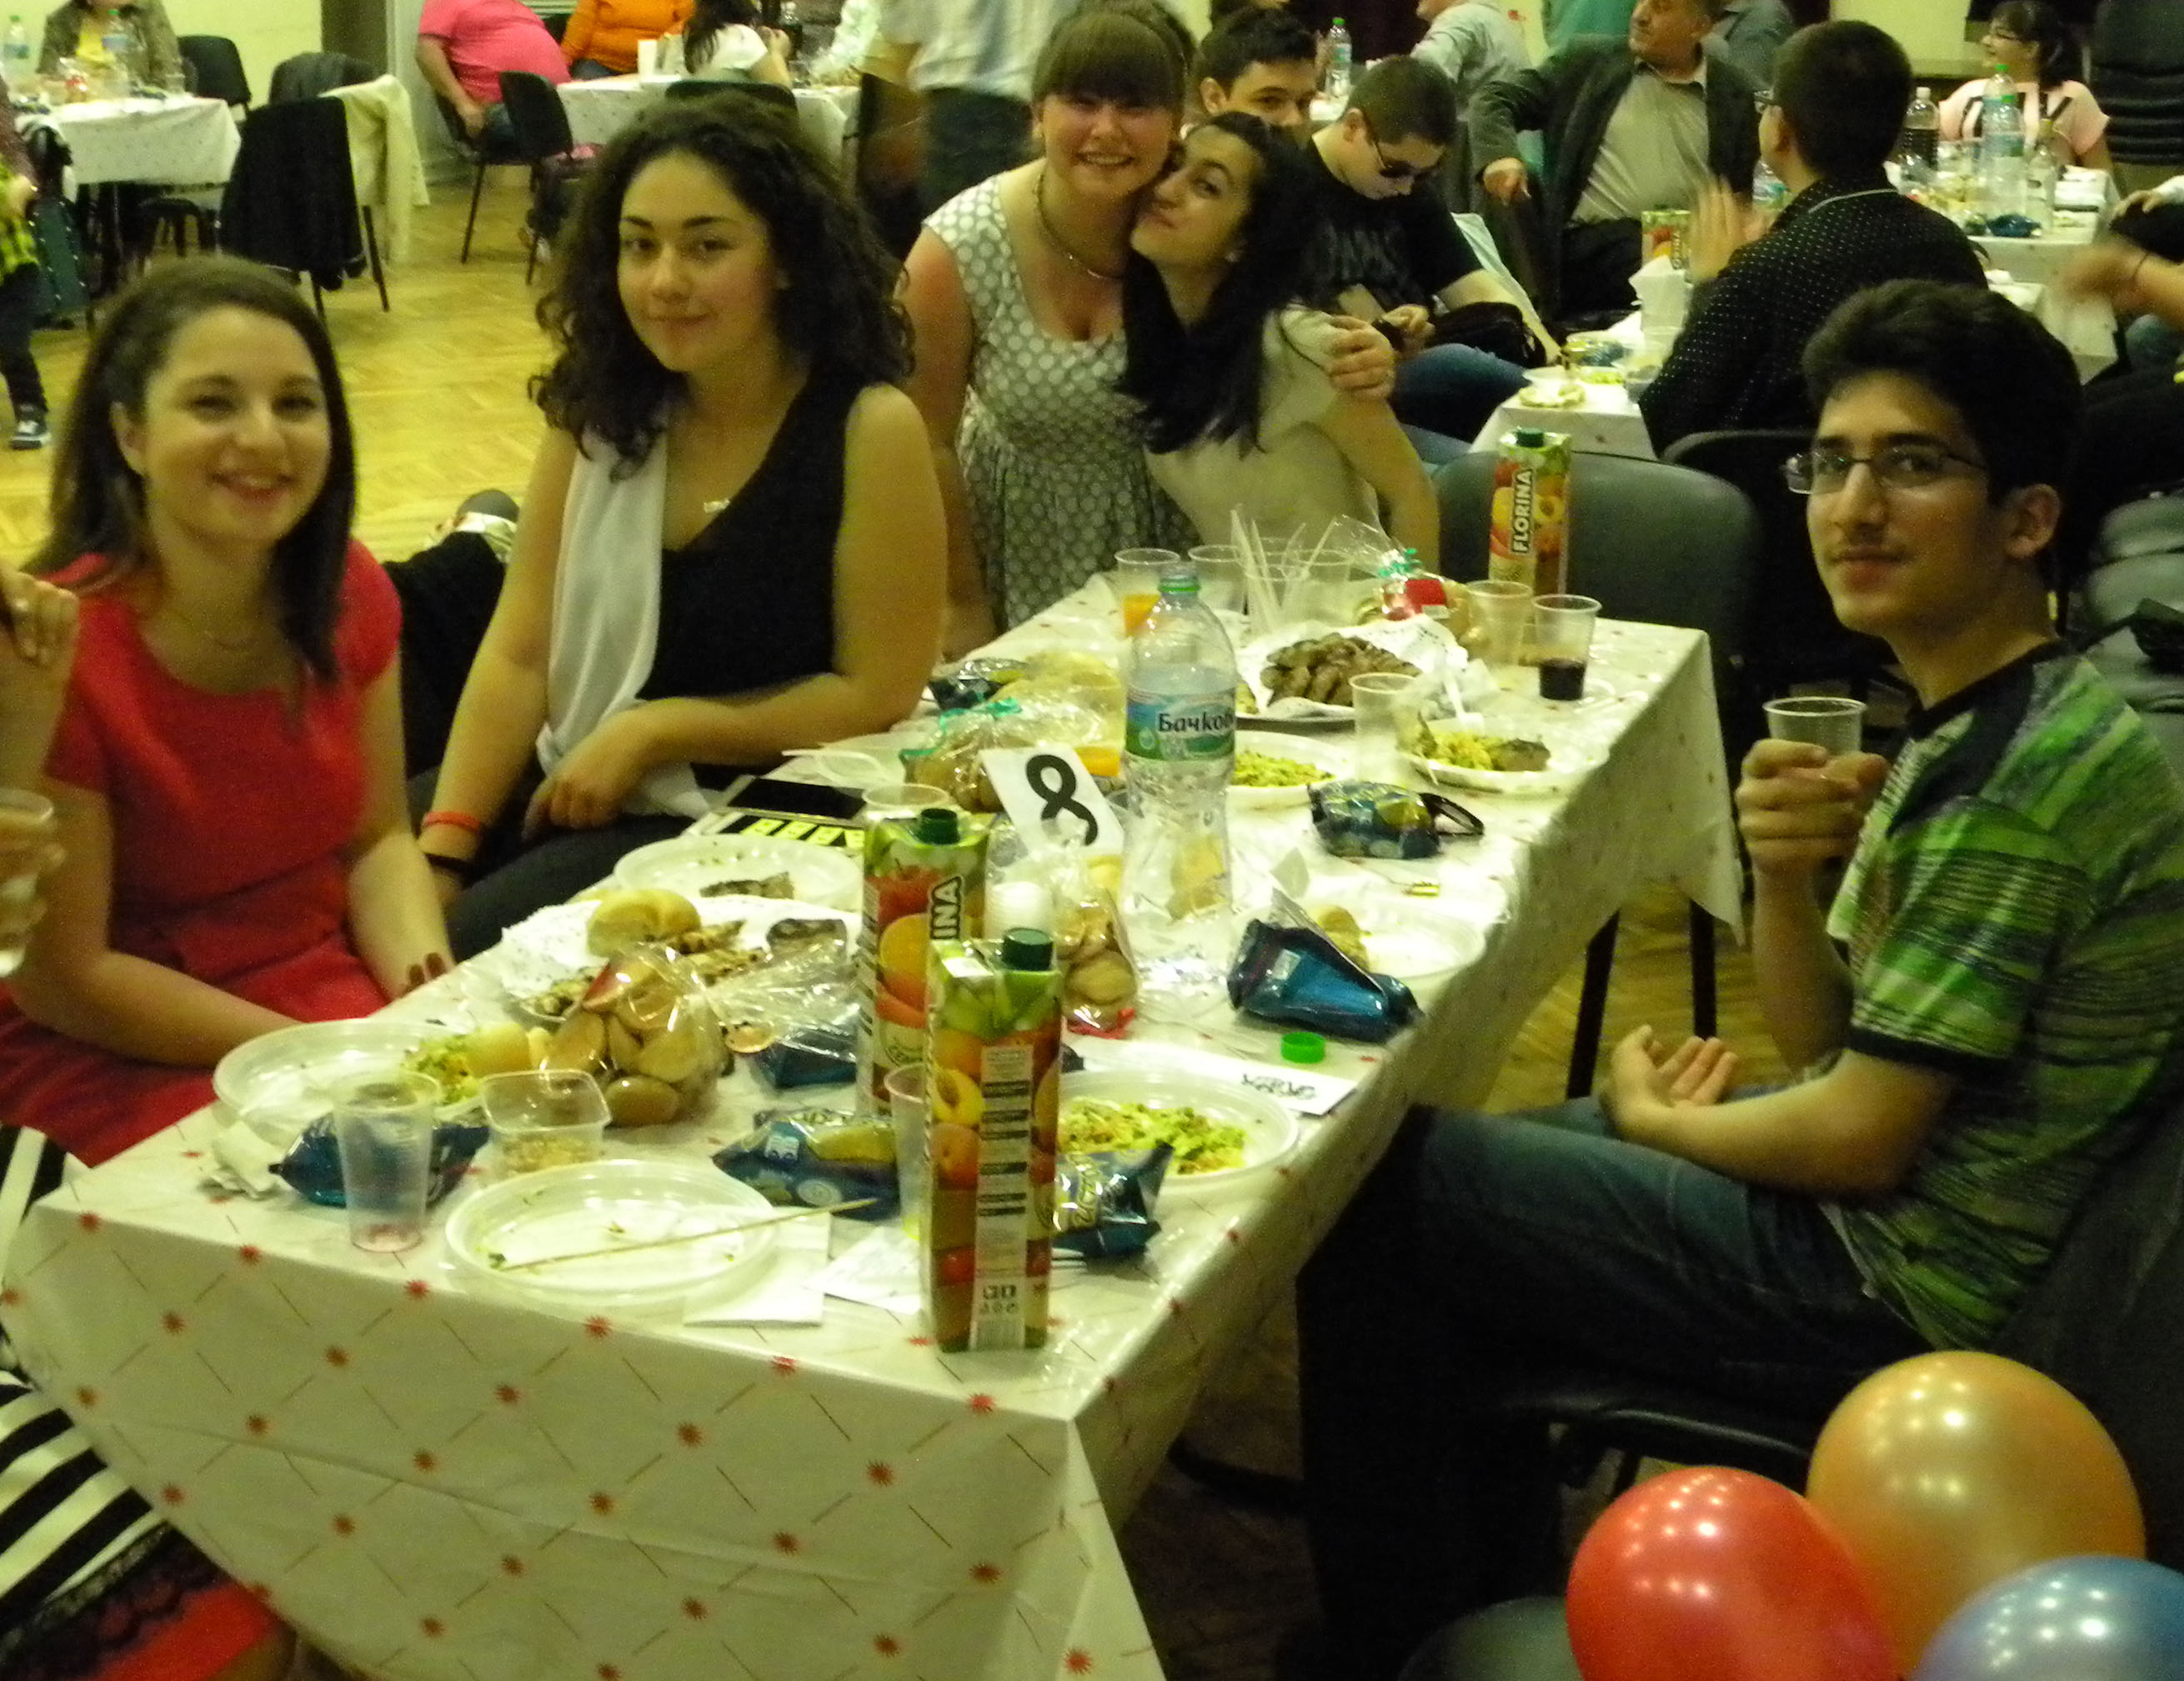 YOUTH CLUB OF AGBU PLOVDIV CHAPTER WILL WORK FOR VARIOUS CAUSES